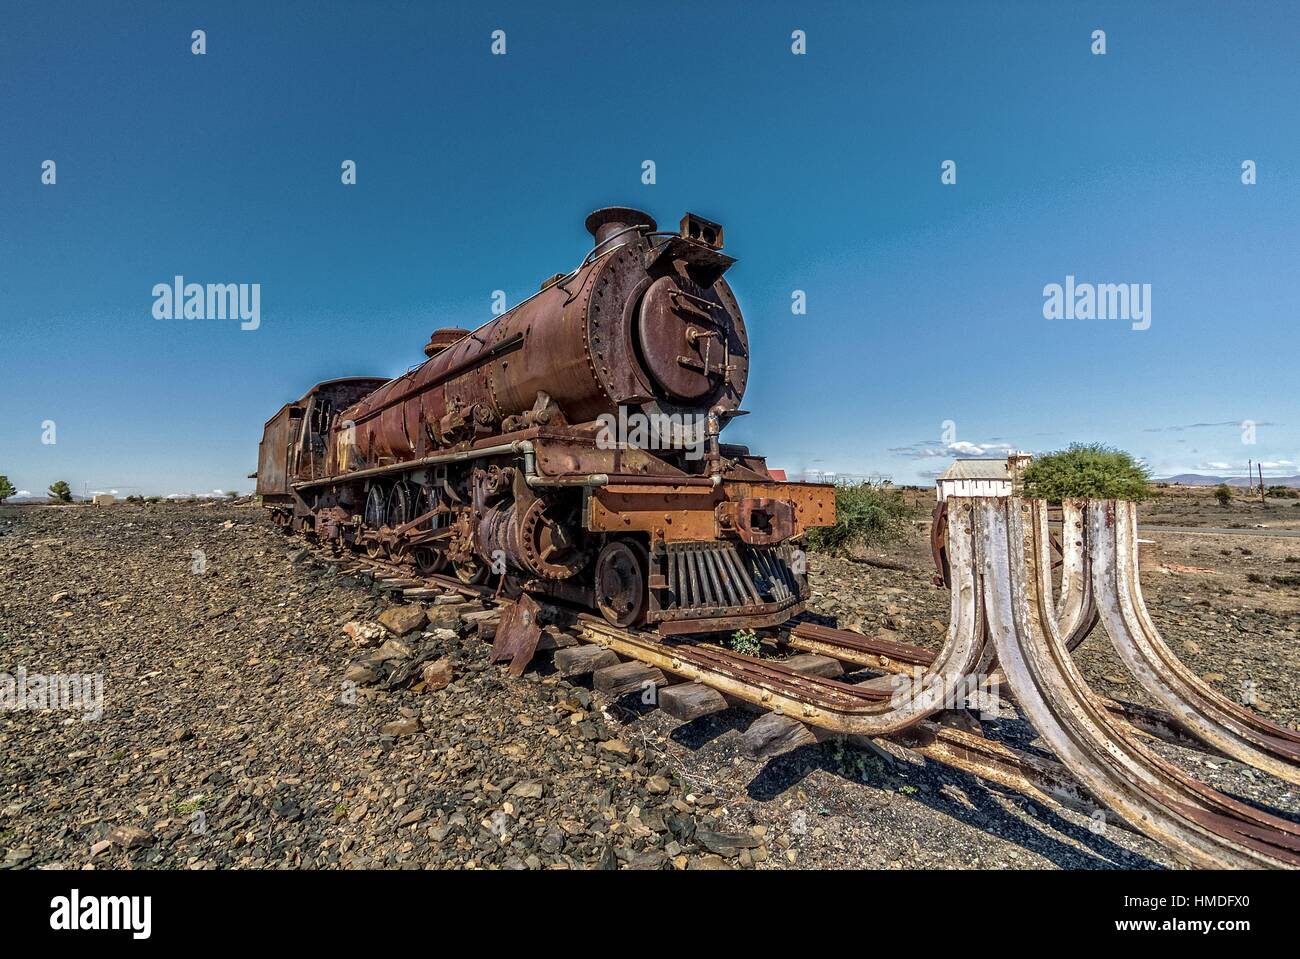 The end of the line for an old steam engine, Left to rust and disintegrate in the dry heat of the South African - Stock Image